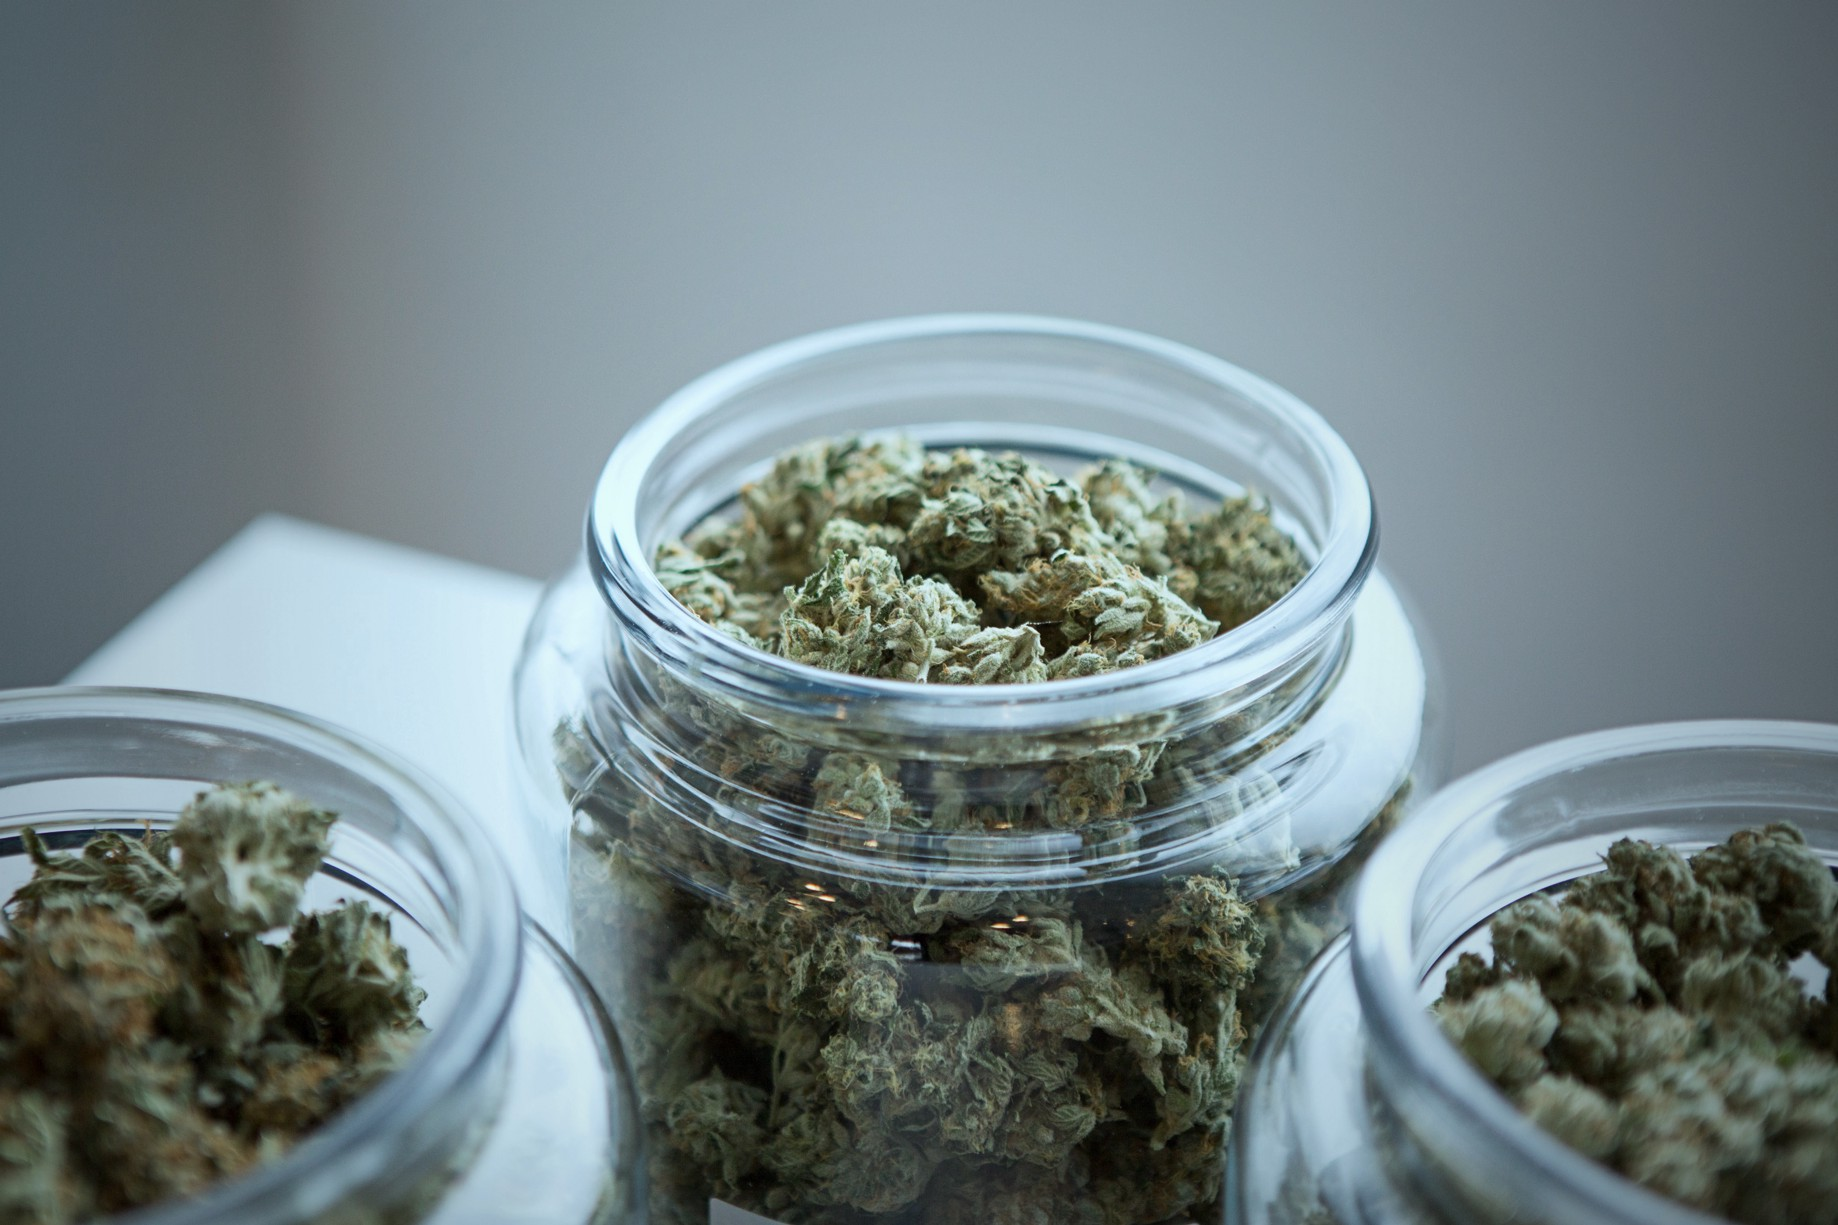 Do Different Strains of Marijuana Cause Different Highs?